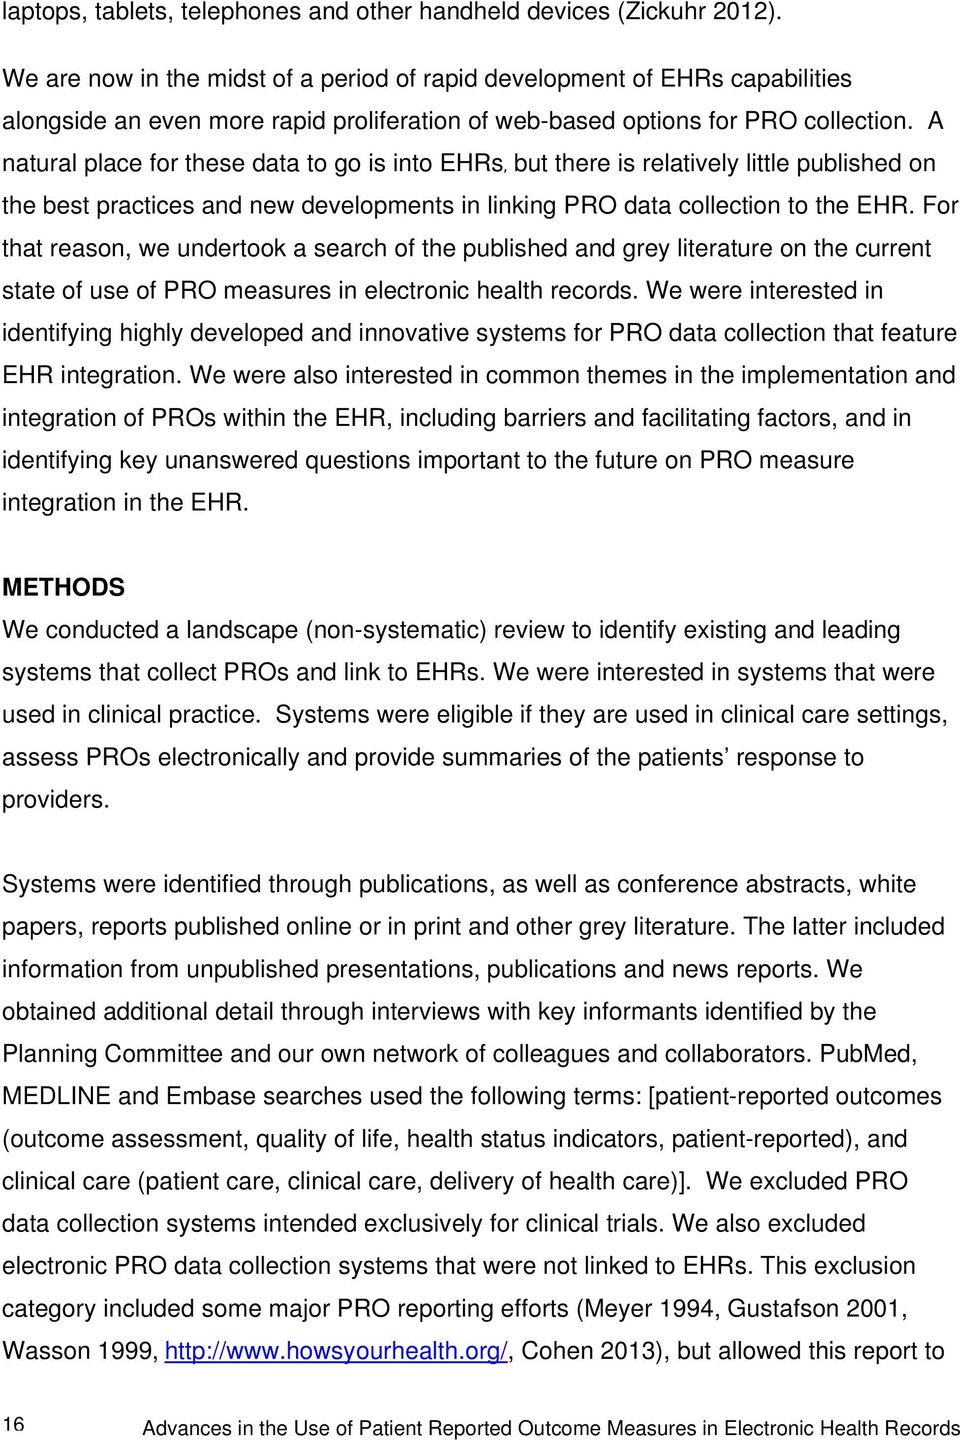 A natural place for these data to go is into EHRs, but there is relatively little published on the best practices and new developments in linking PRO data collection to the EHR.